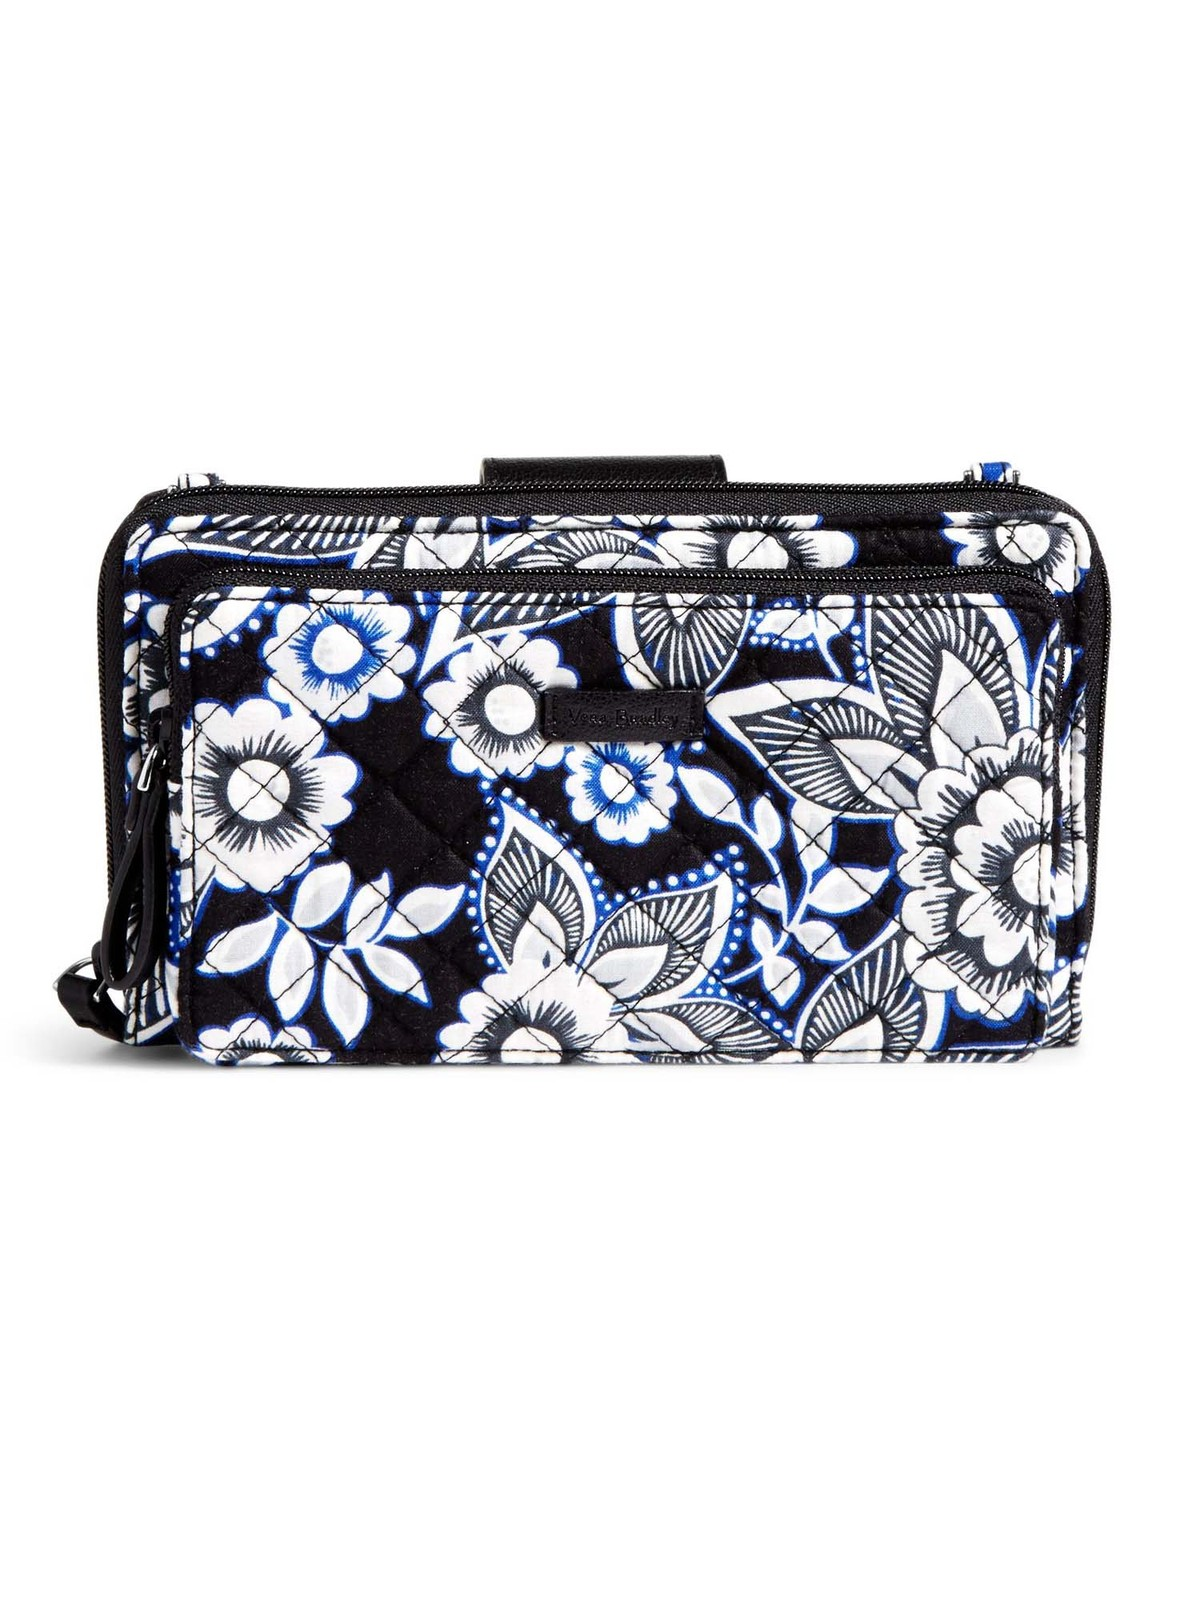 Vera Bradley Iconic Deluxe All Together Crossbody Bag, Snow Lotus